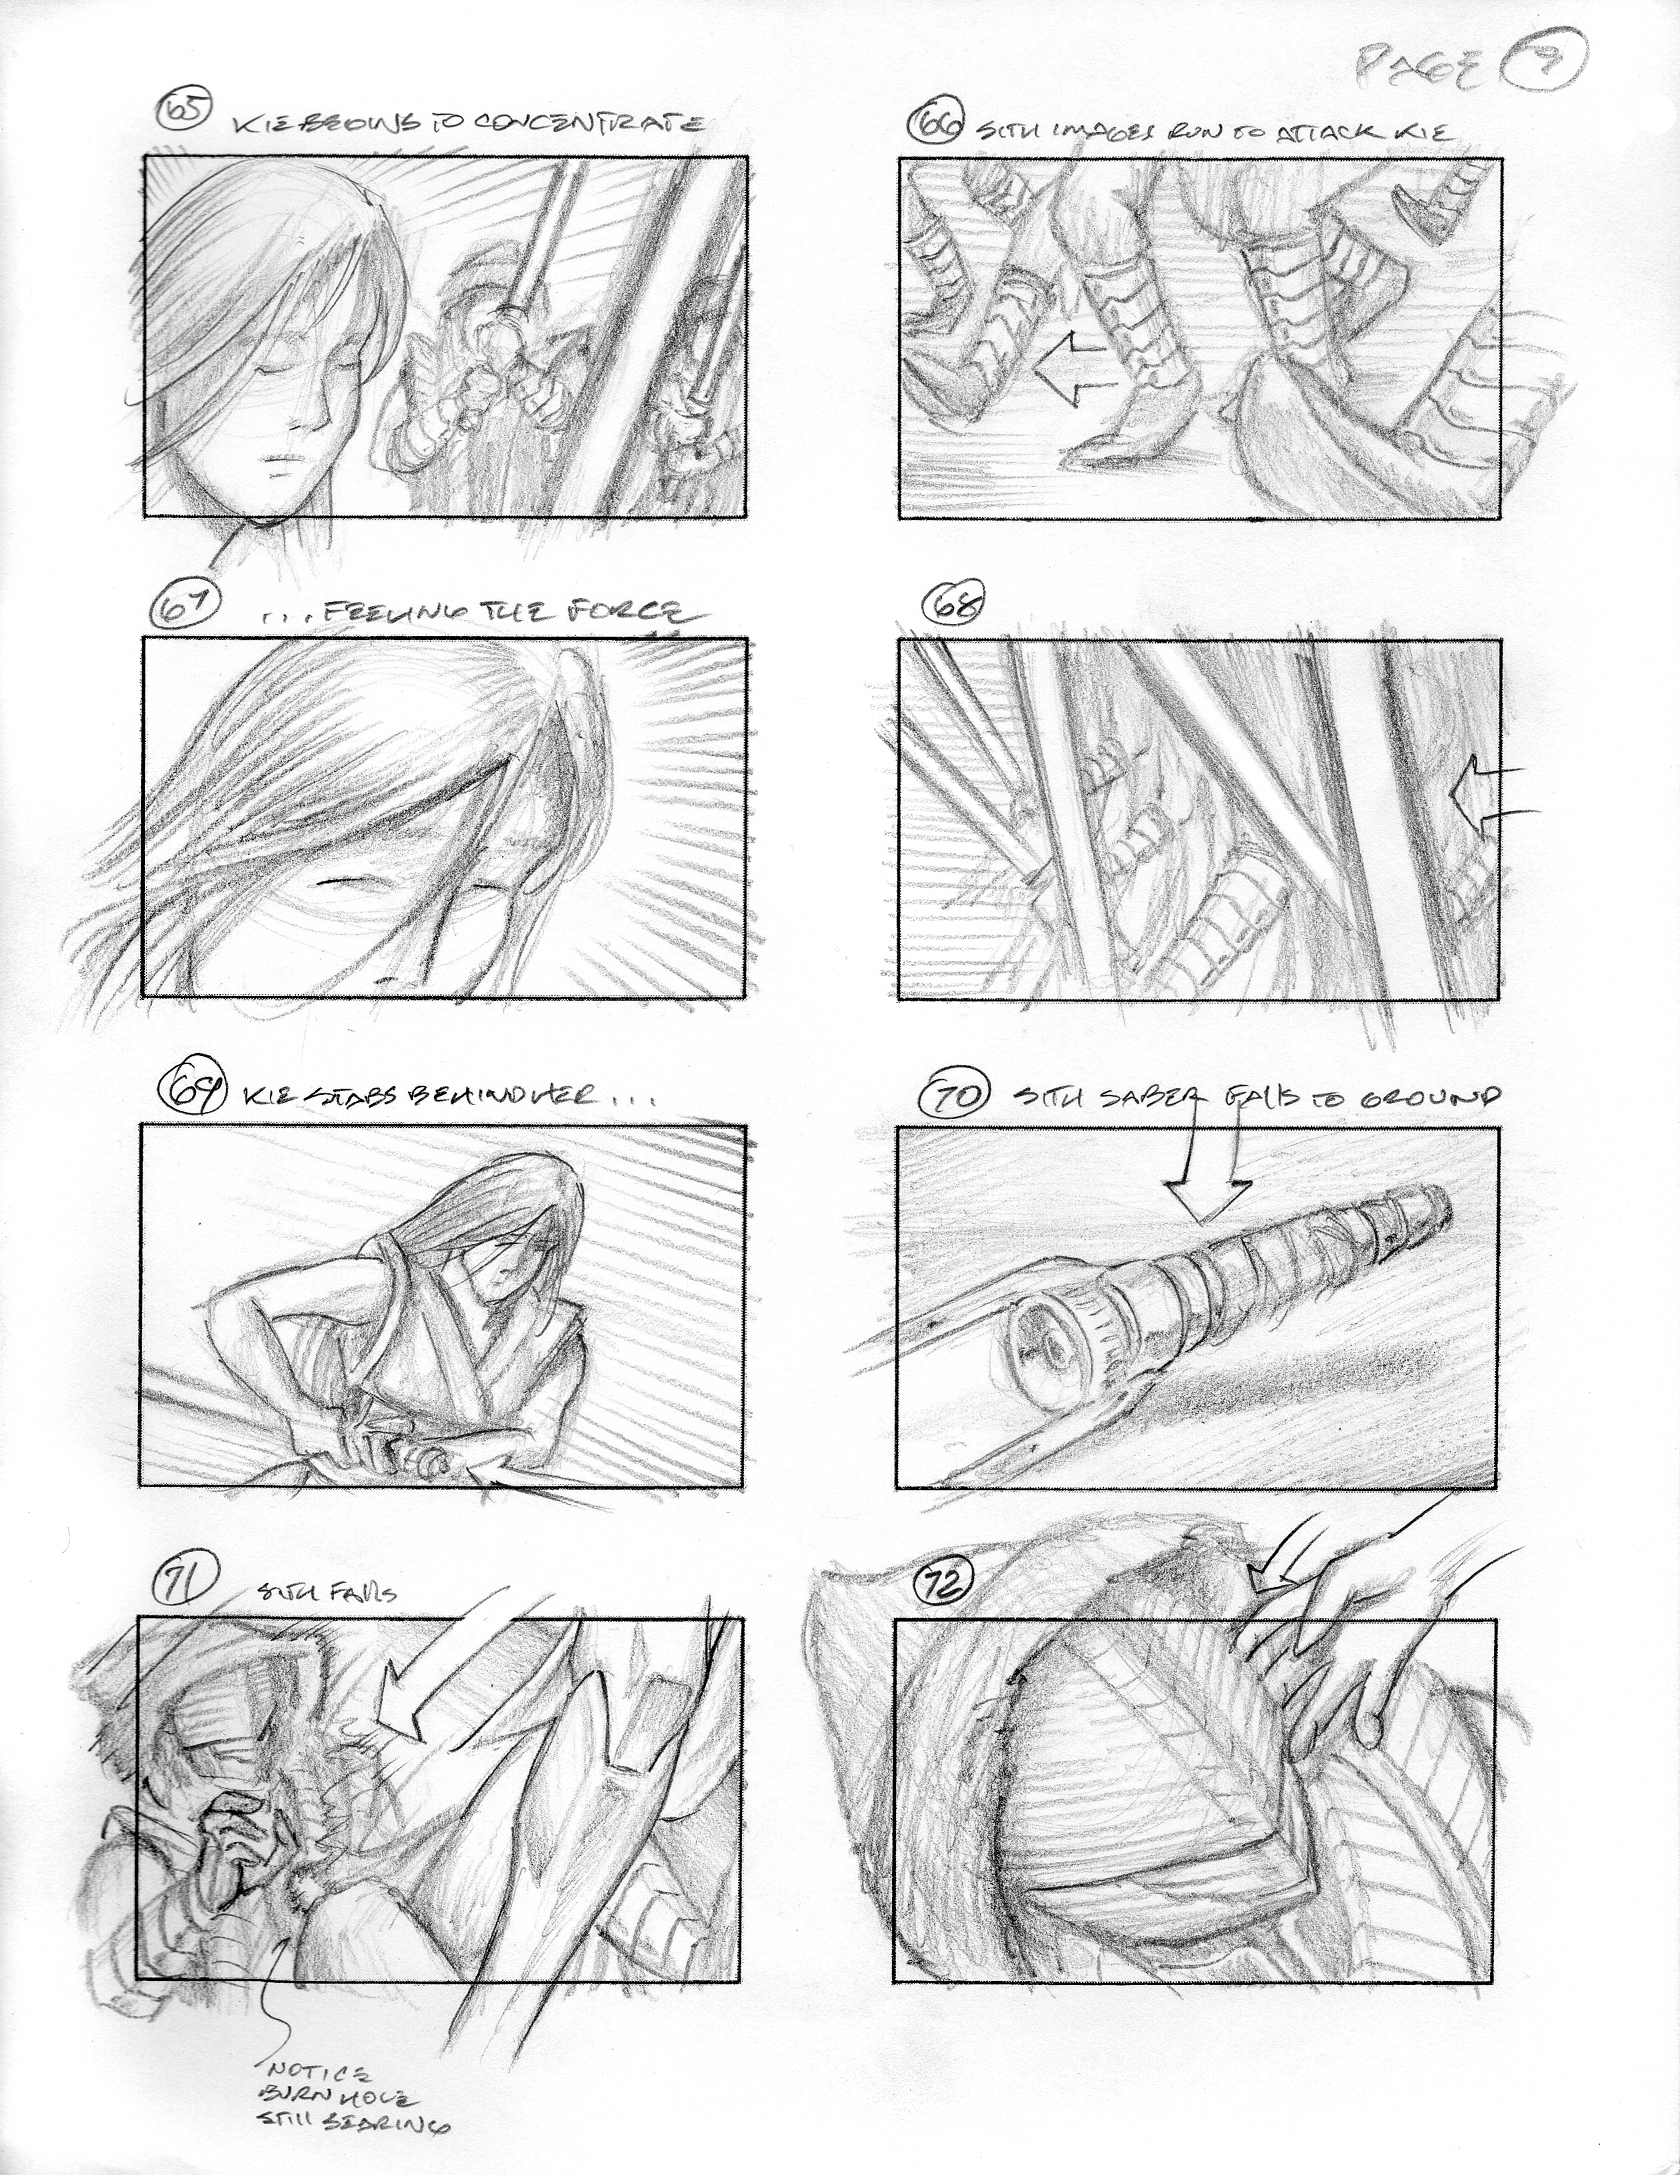 Star Wars Short Boards page 9  051